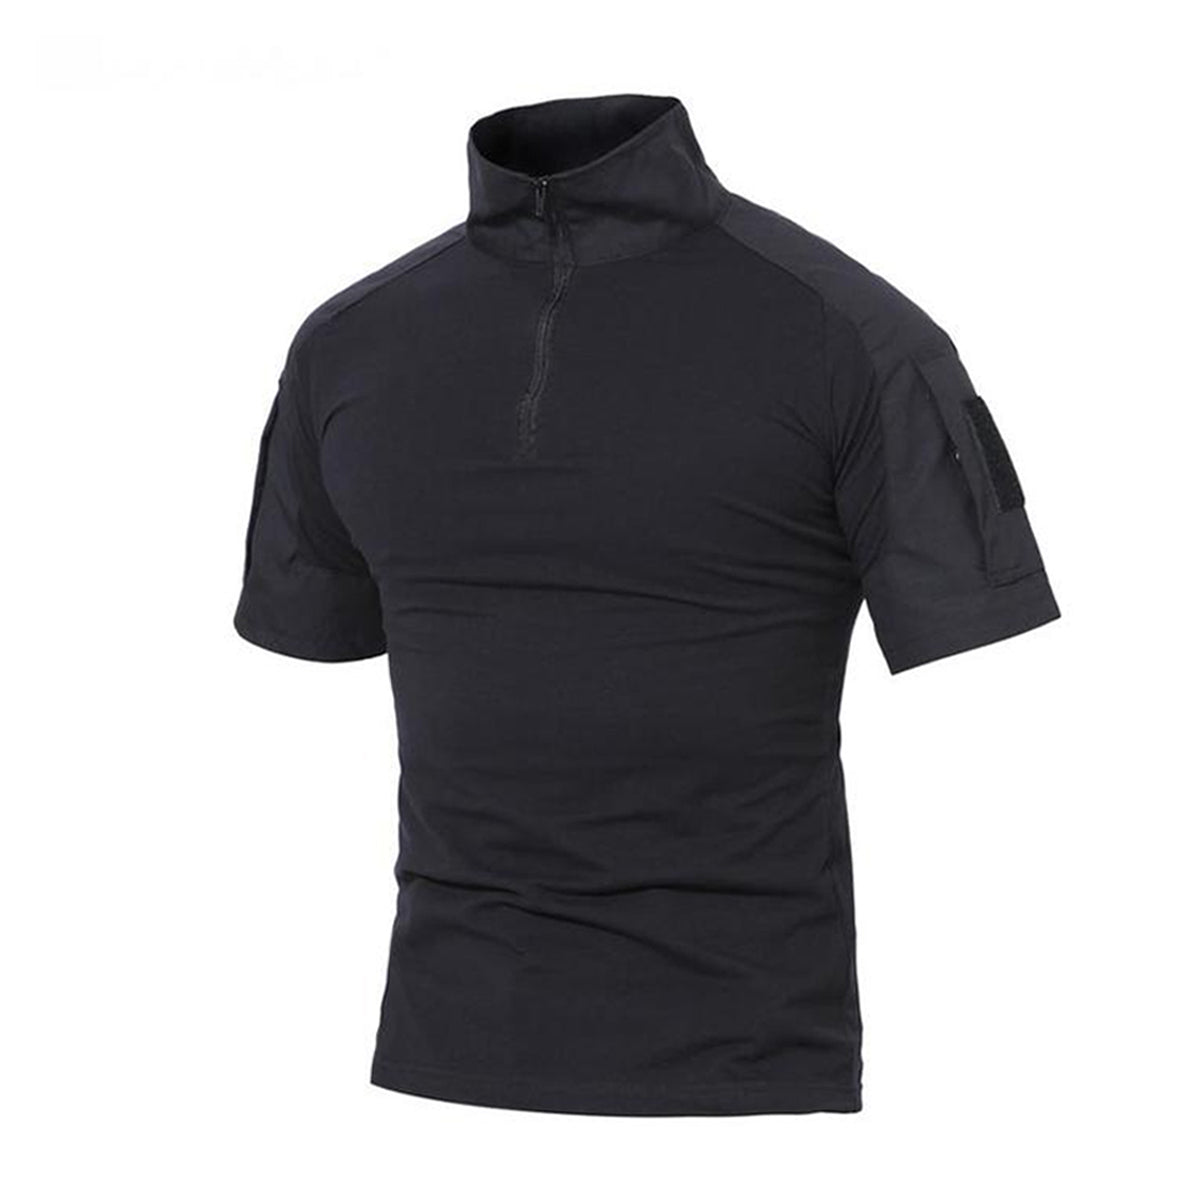 OPZ Base Layer Short Sleeve Shirt Made of Polyester & Cotton